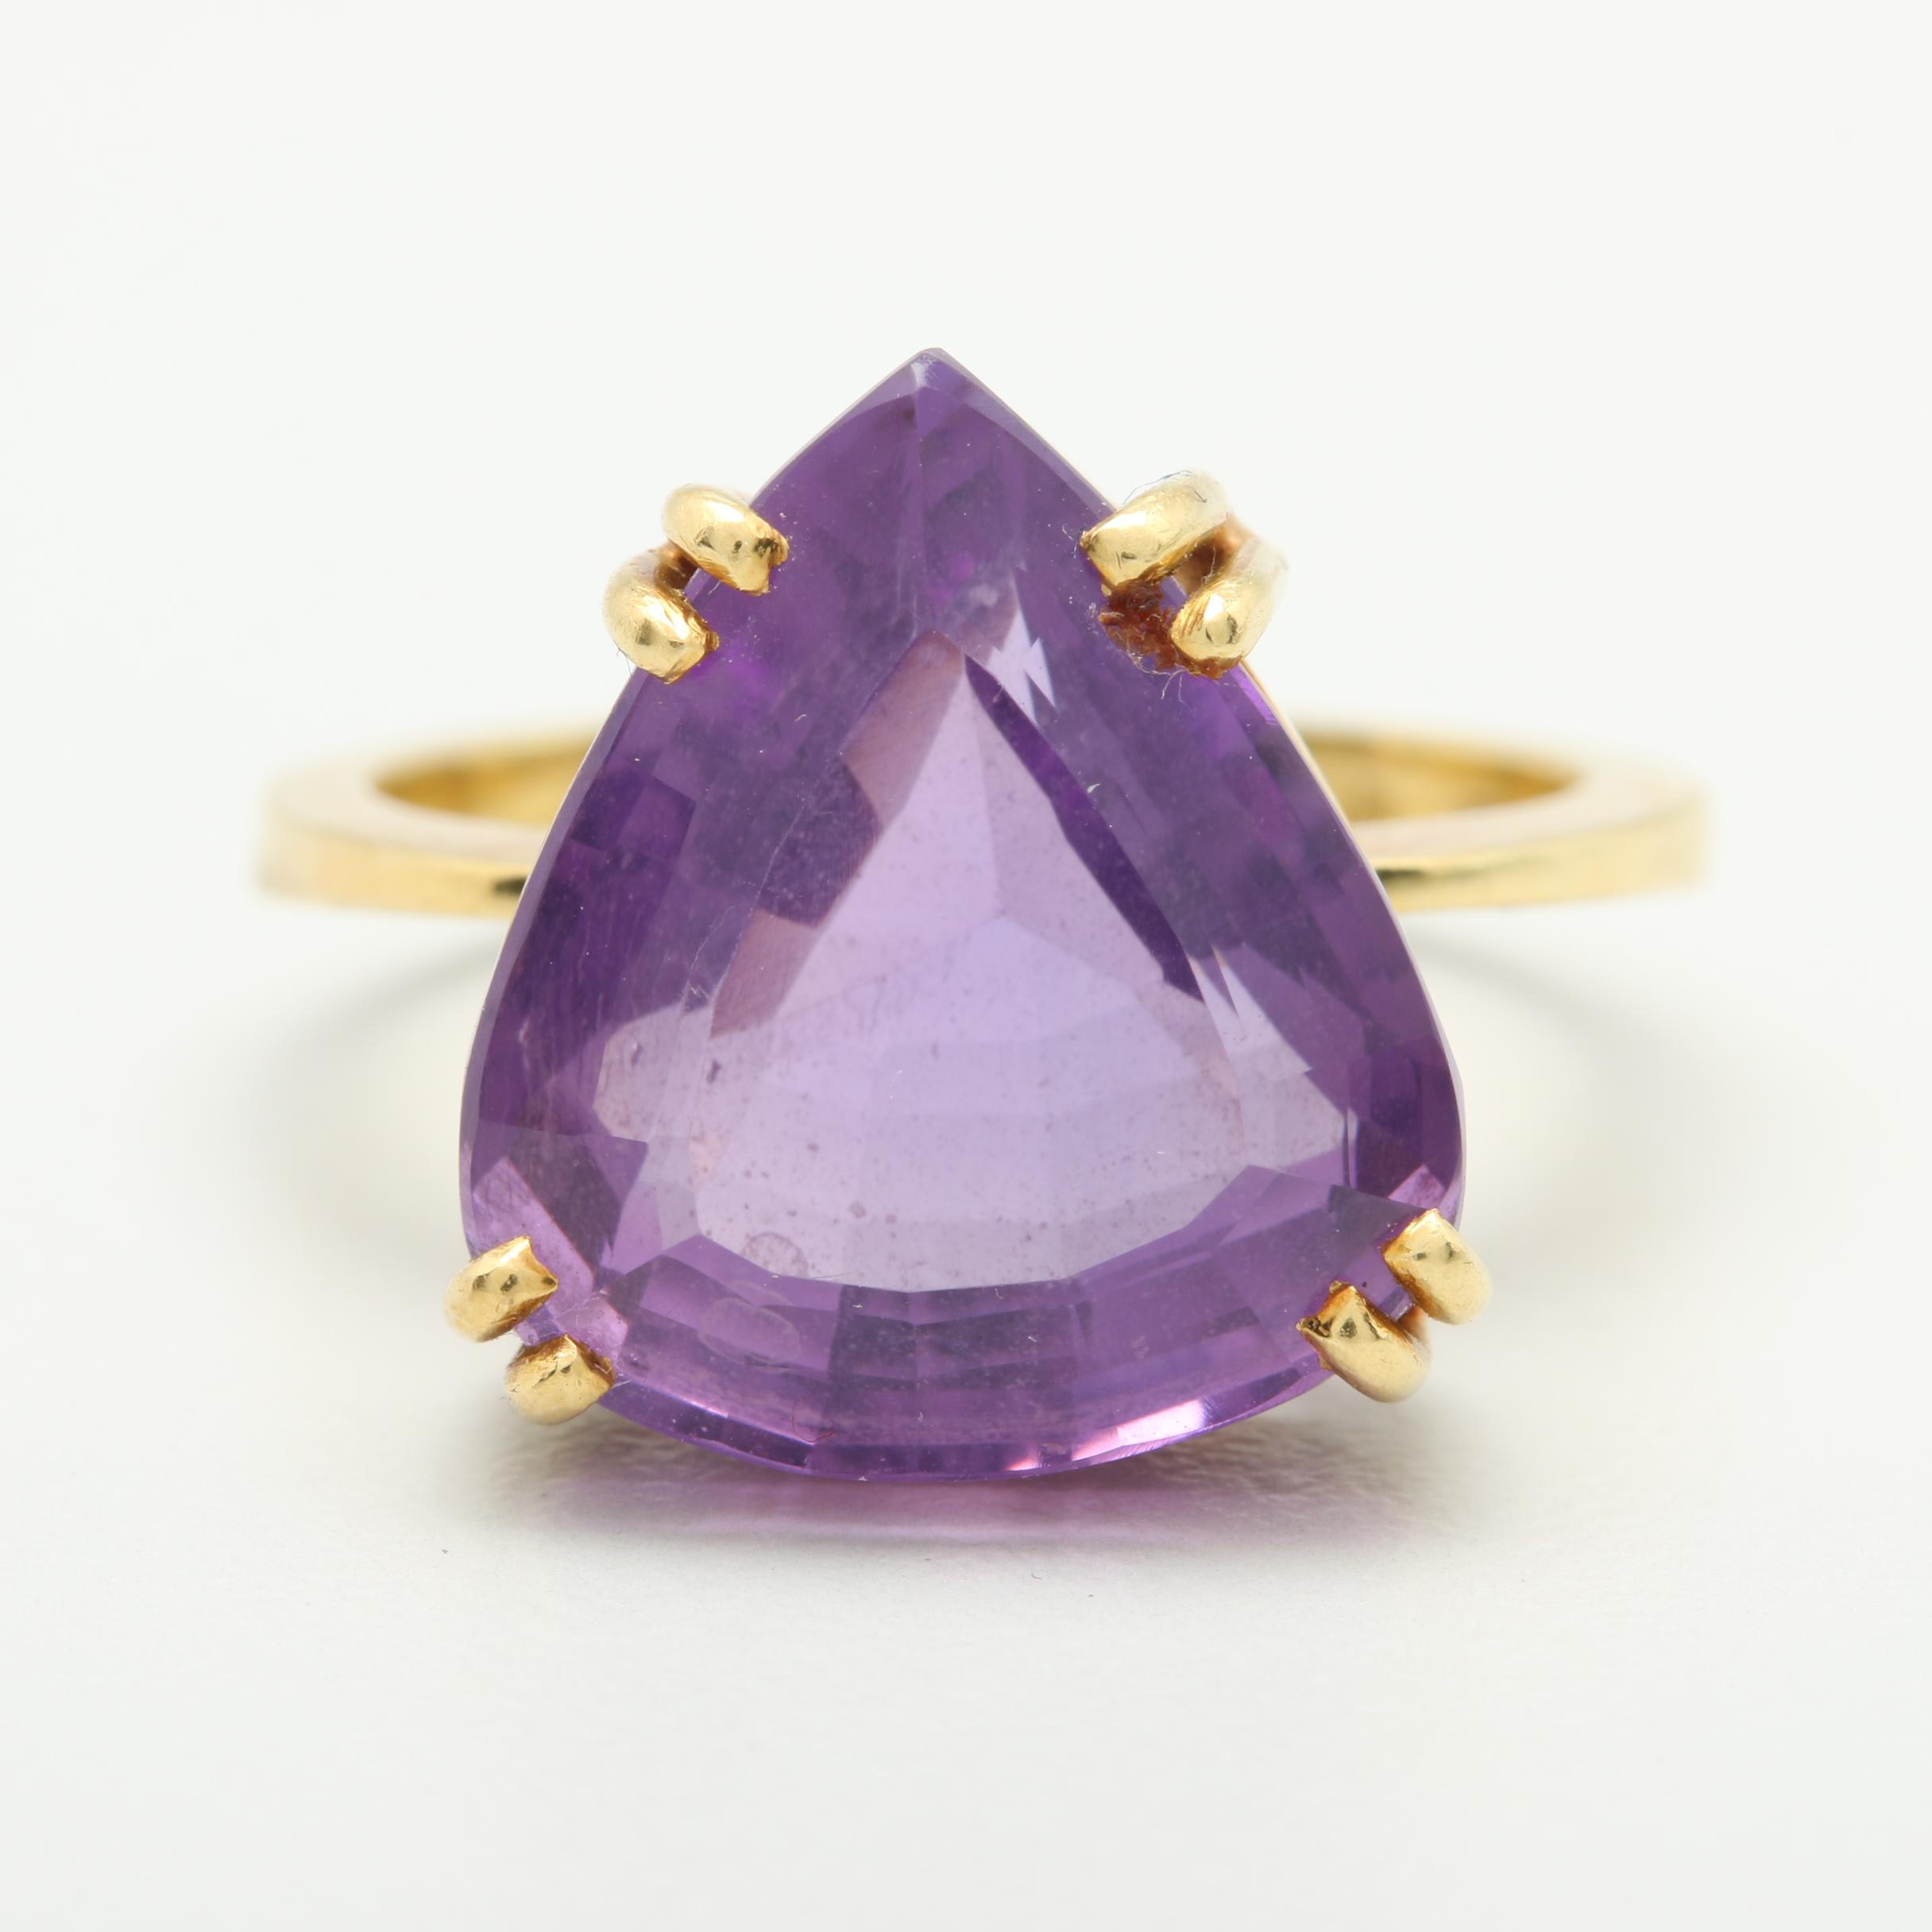 18K Yellow Gold 9.90 CT Amethyst Ring